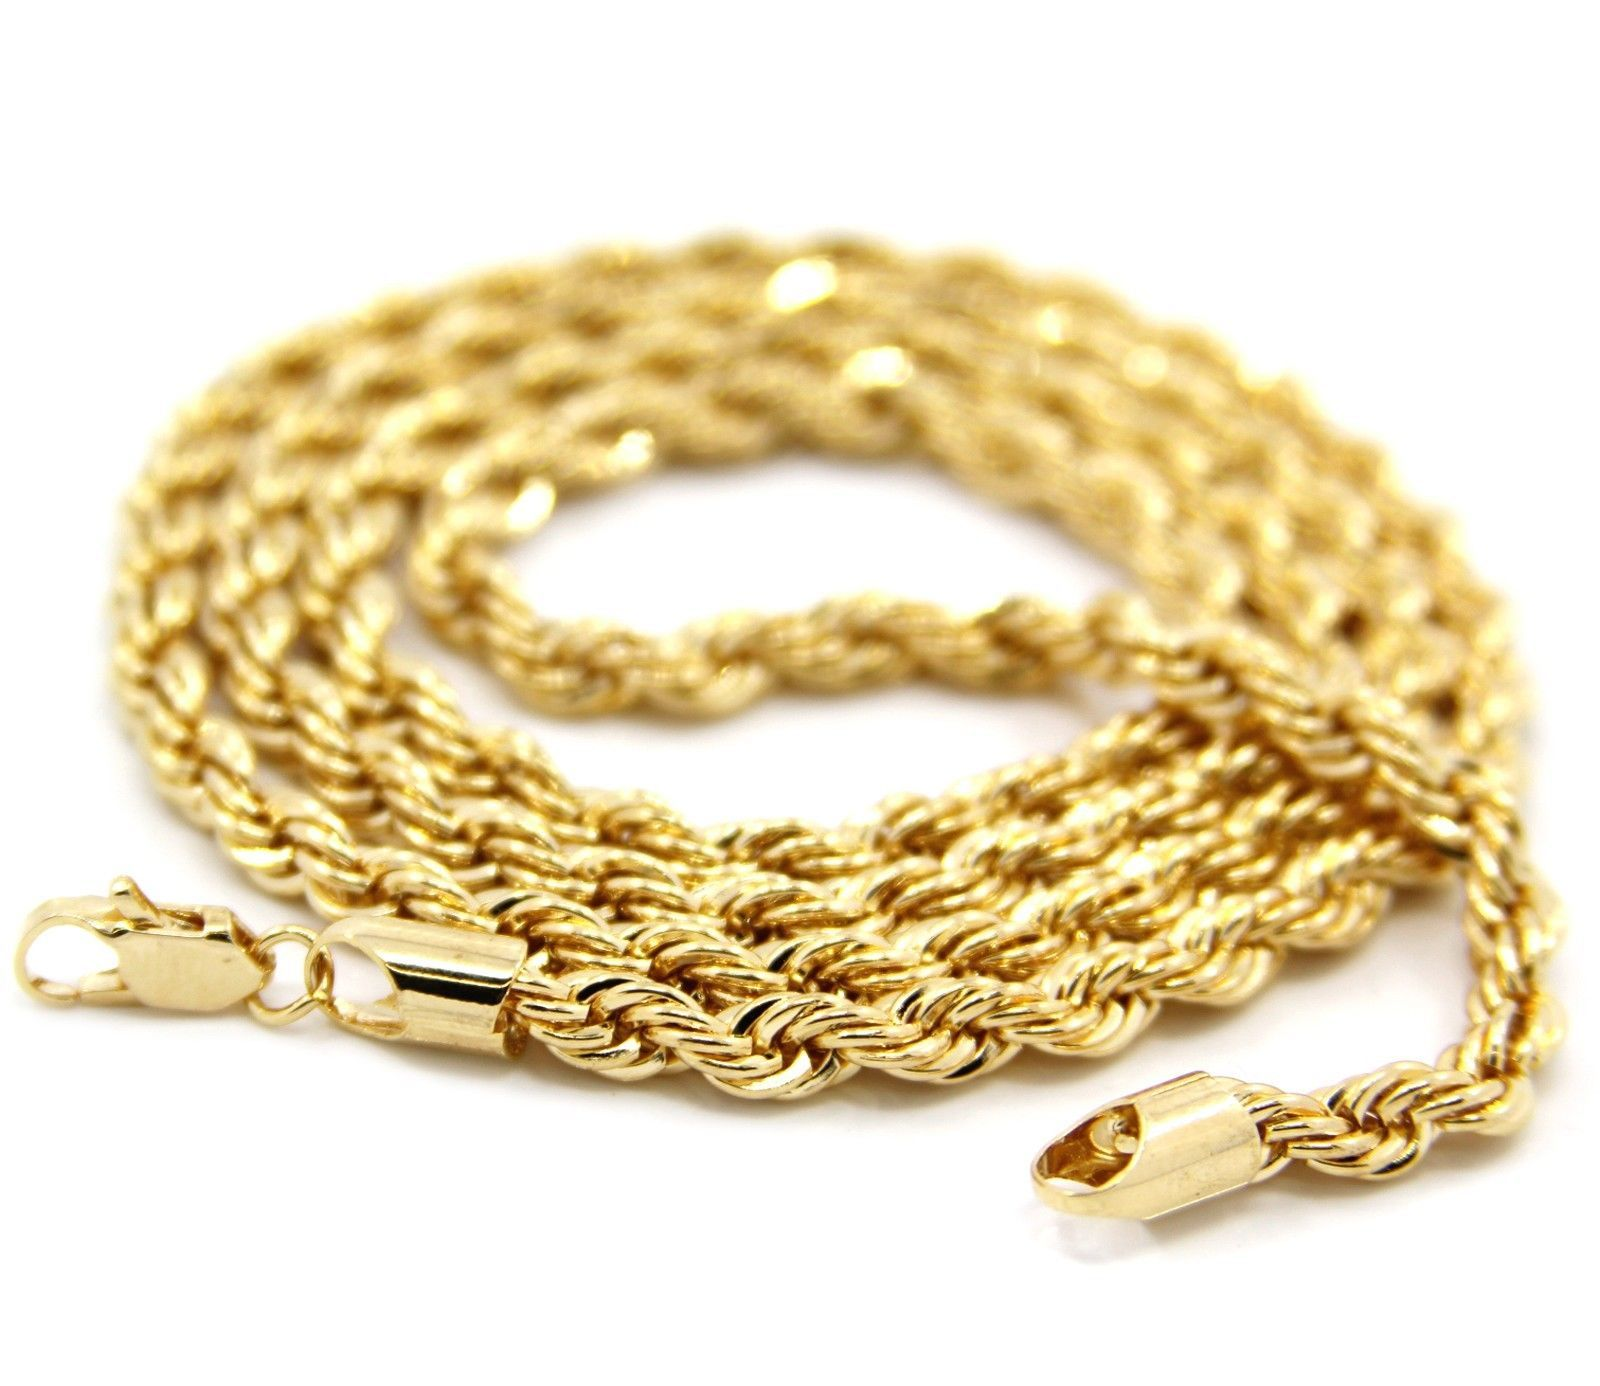 Mens 14k Yellow Gold Plated 4mm Rope Chain Necklace 20 Inches Kc Gold Chains For Men Mens Chain Necklace Gold Rope Chains